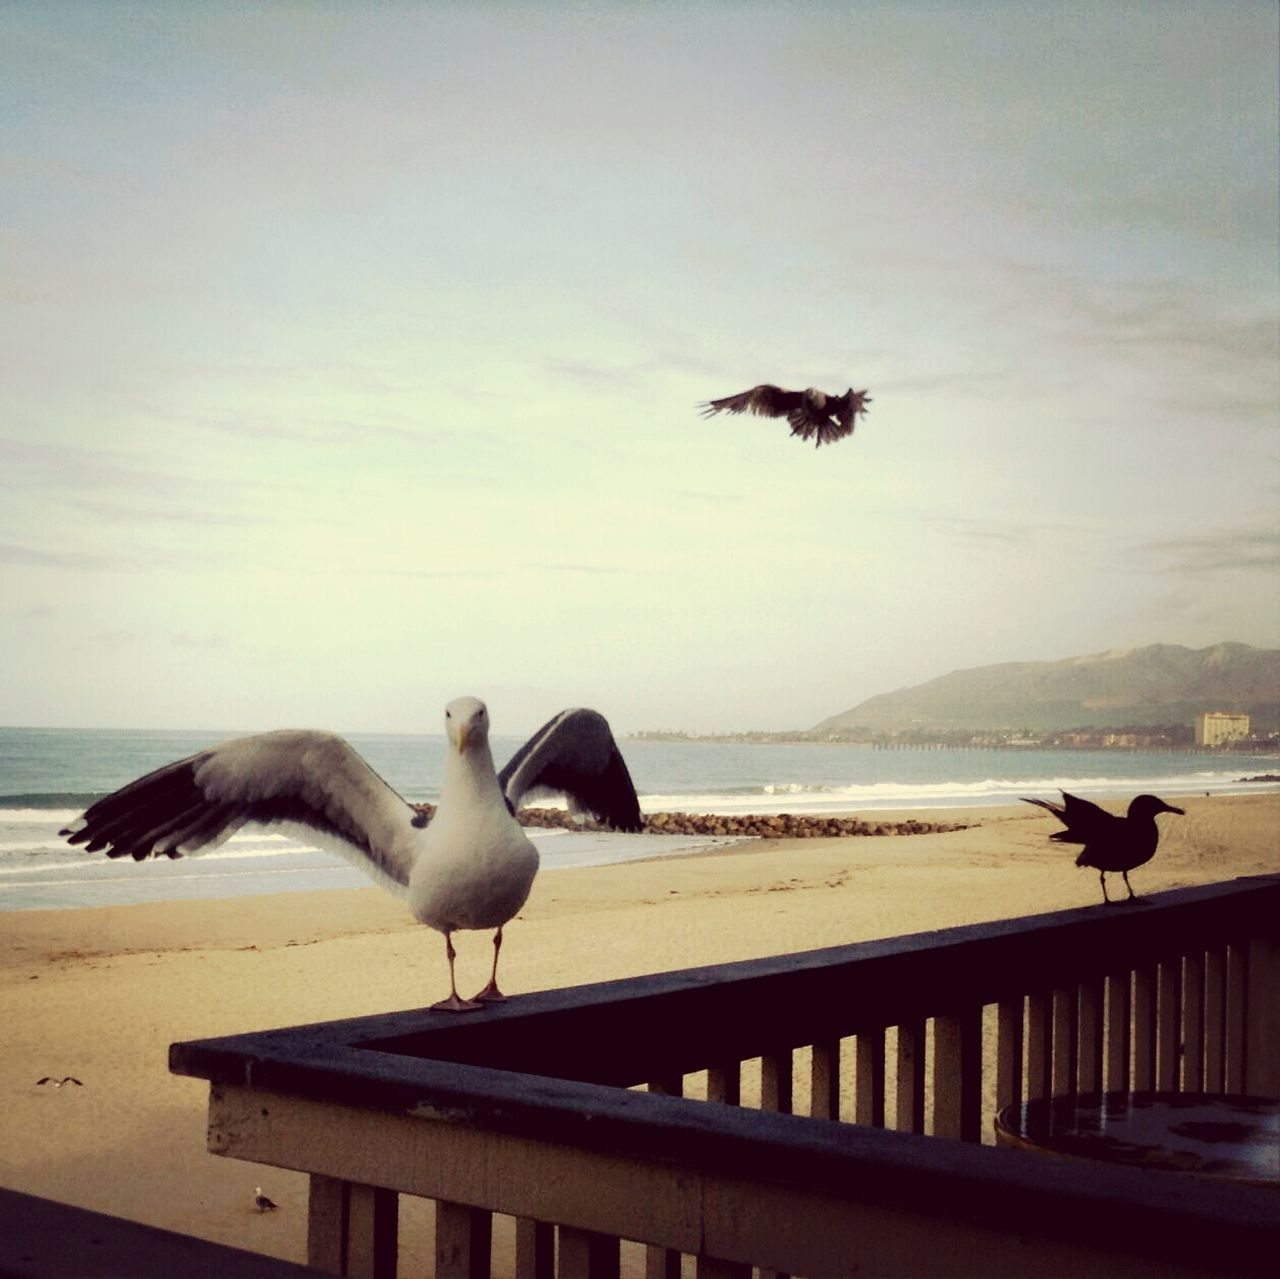 Seagulls On Wooden Railing By Beach Against Sky